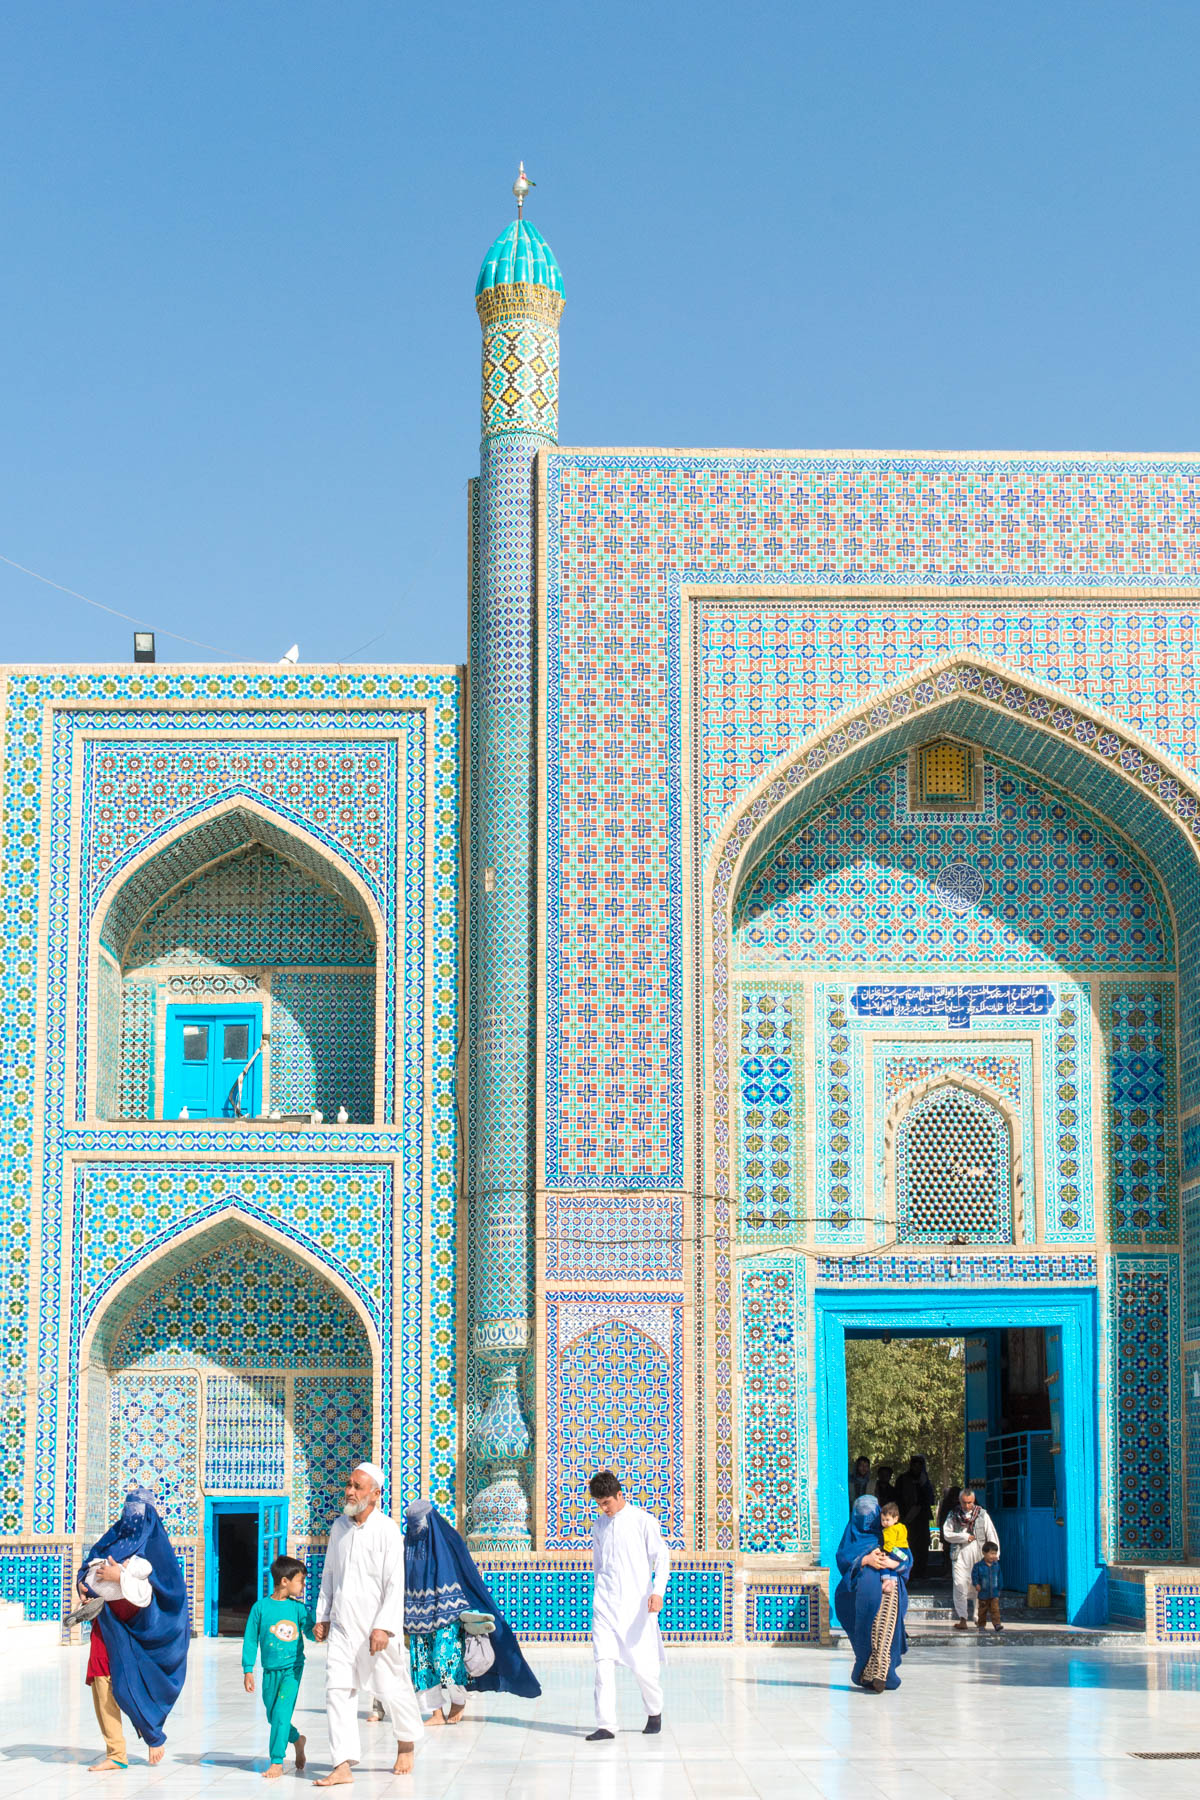 Photos of Mazar-i-Sharif, Afghanistan: An Afghan family walking in the Blue Mosque